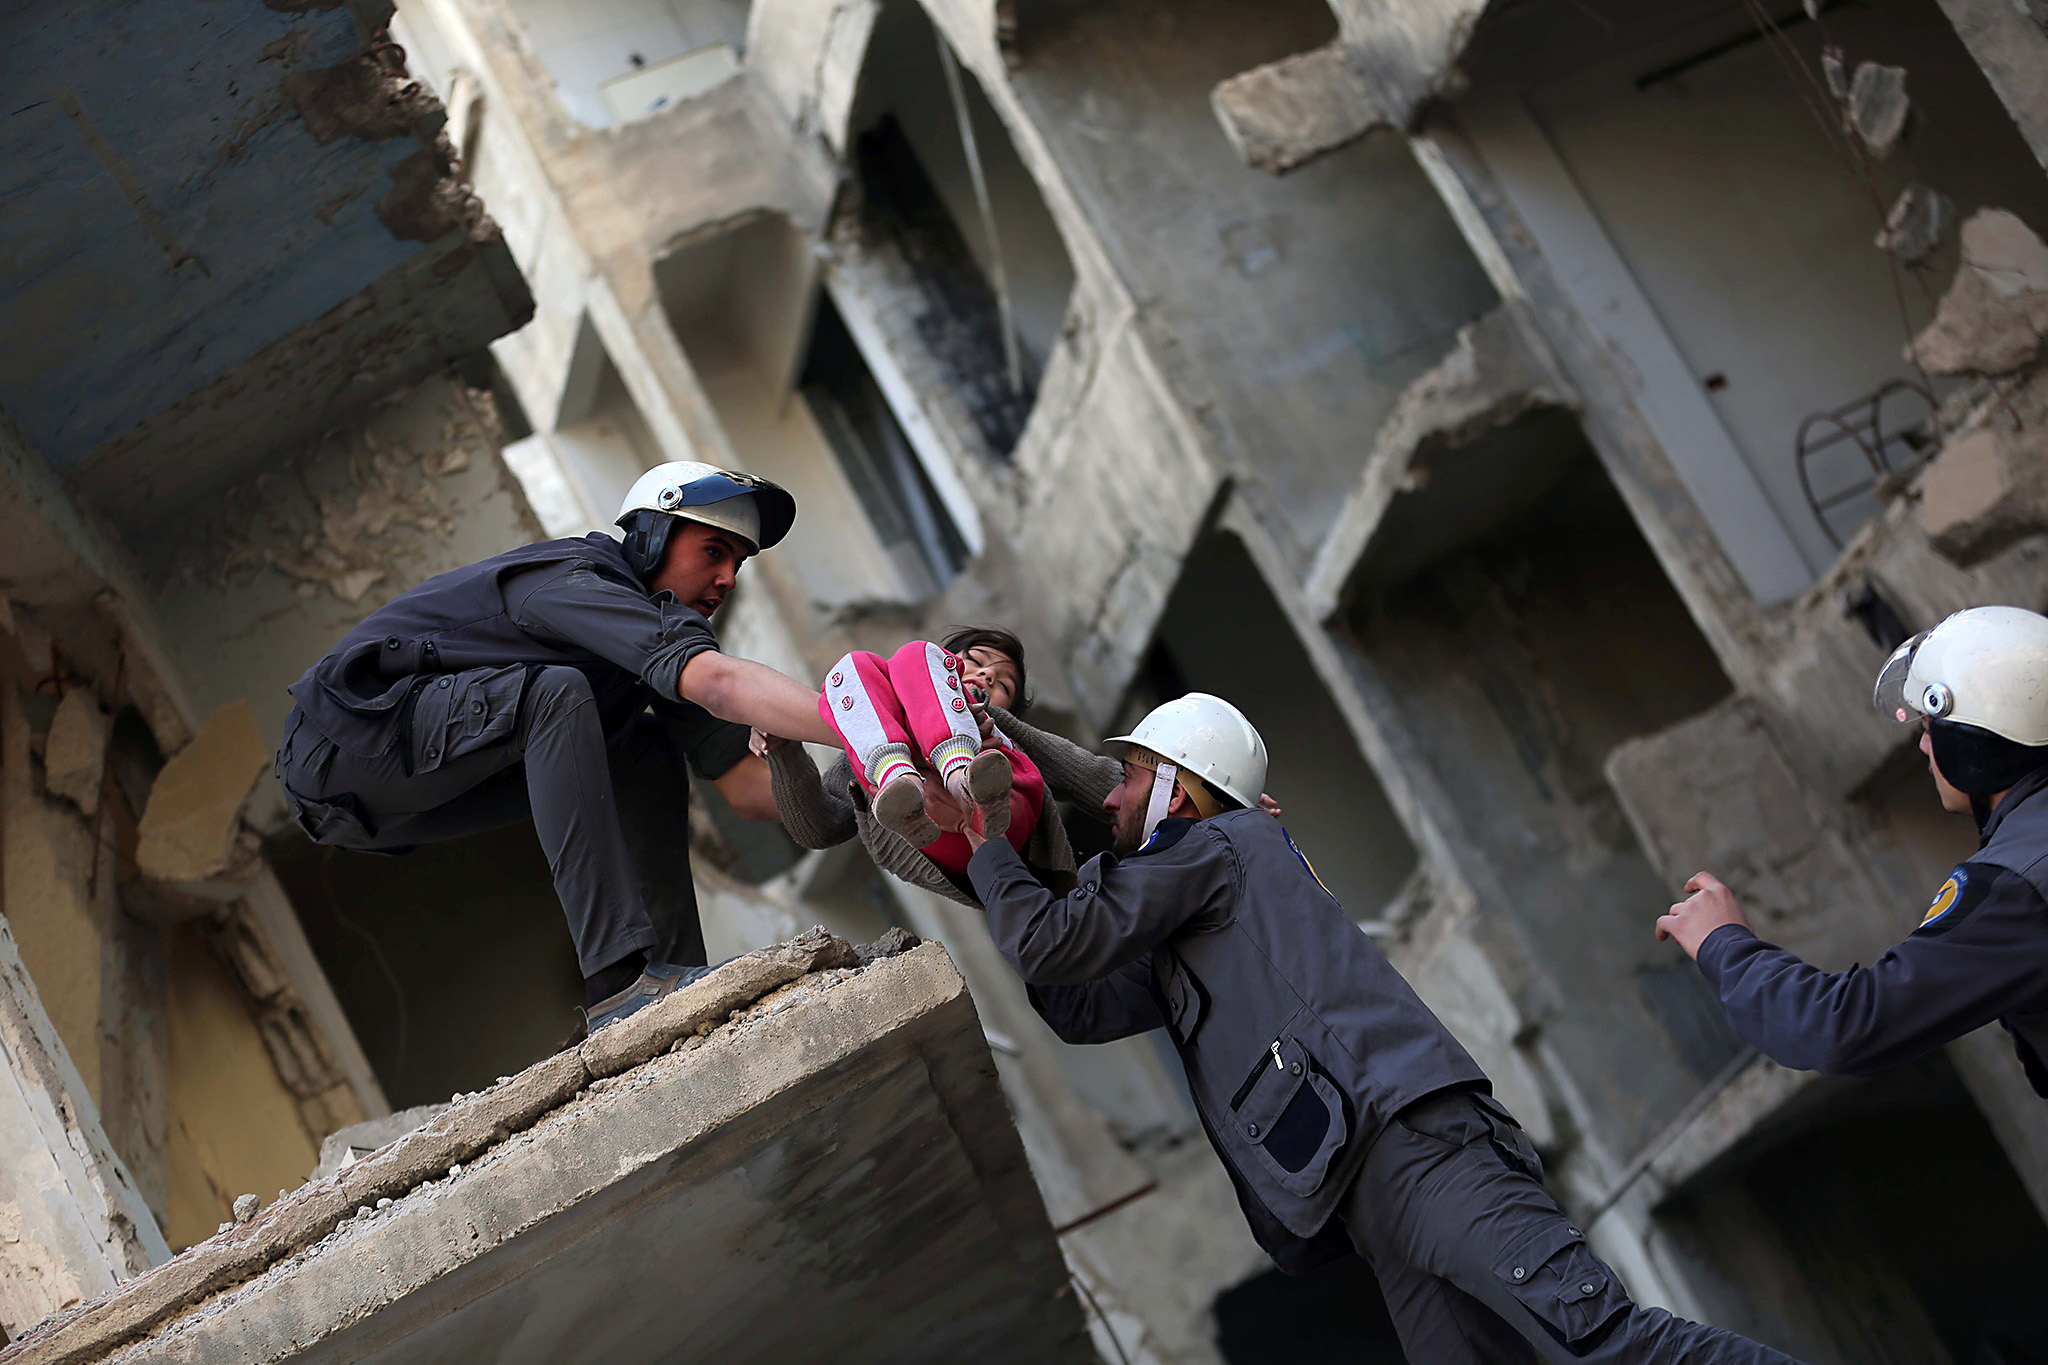 Members of the Syrian Civil Defence, known as the White Helmets, evacuate a child during a training session in the rebel-held eastern Ghouta area, east of the capital Damascus, on November 22, 2016.   / AFP PHOTO / AMER ALMOHIBANYAMER ALMOHIBANY/AFP/Getty Images